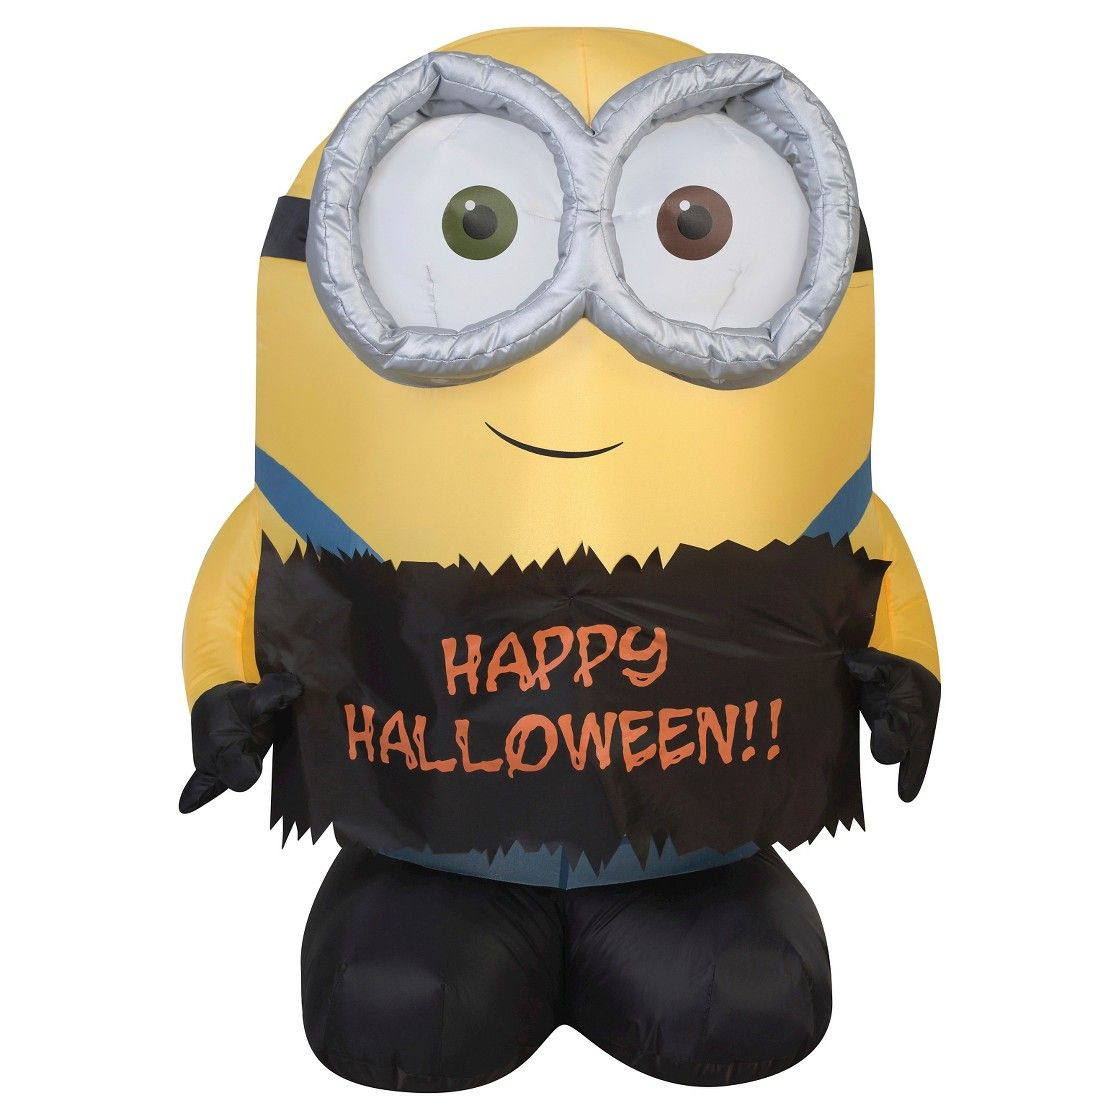 Halloween Airblown Minions D Cor With Images